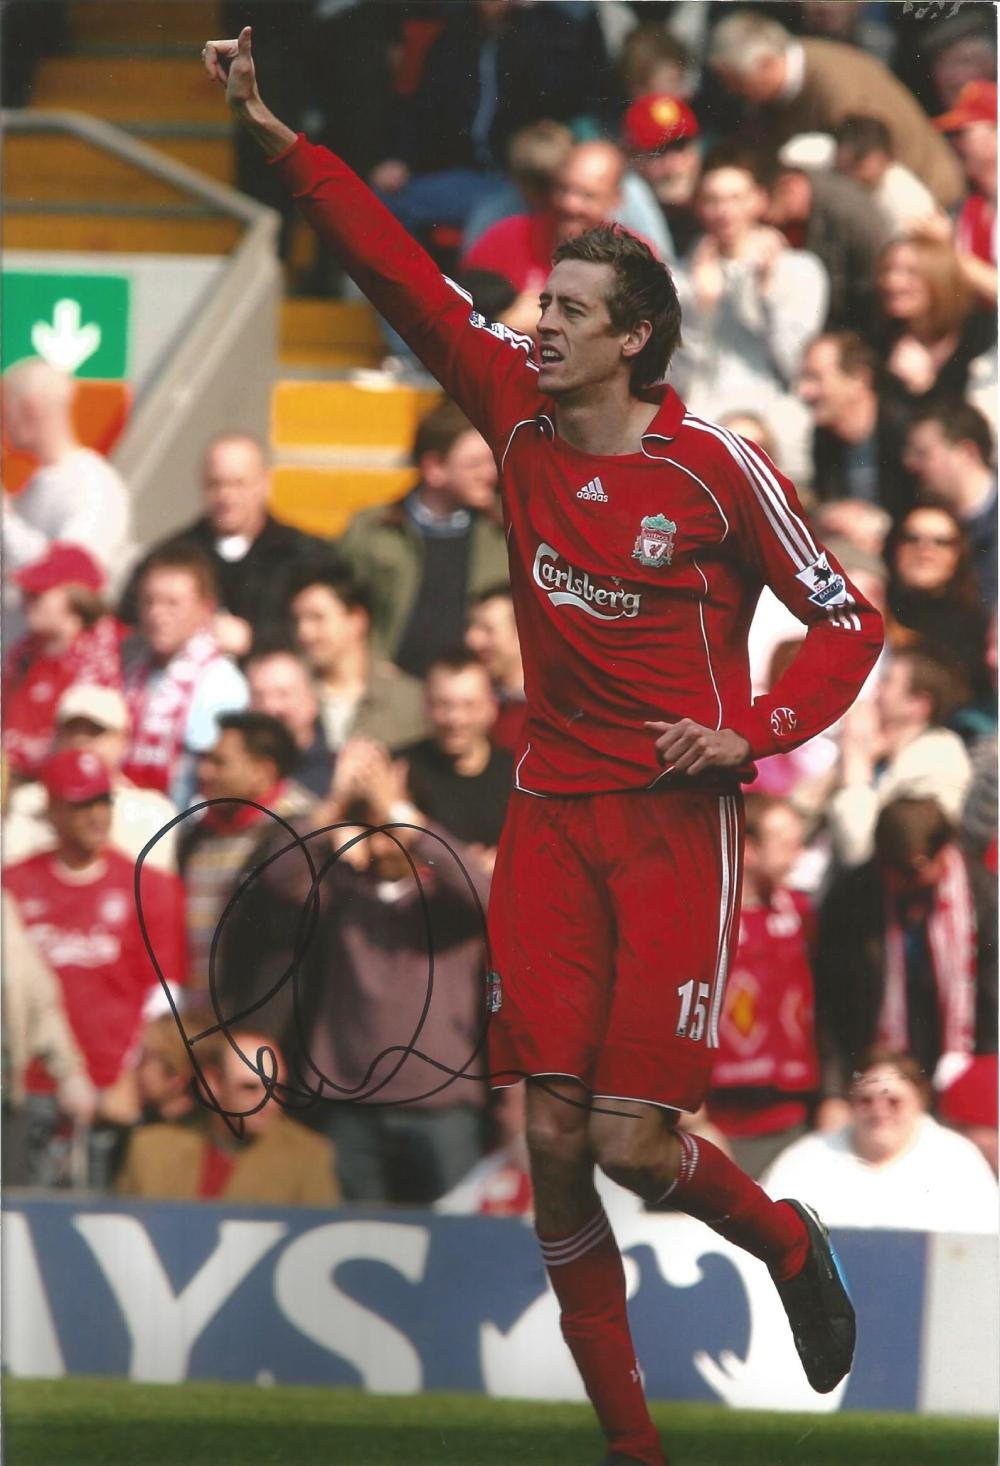 Football Peter Crouch 12x8 signed colour photo pictured during his time at Liverpool. Good condition